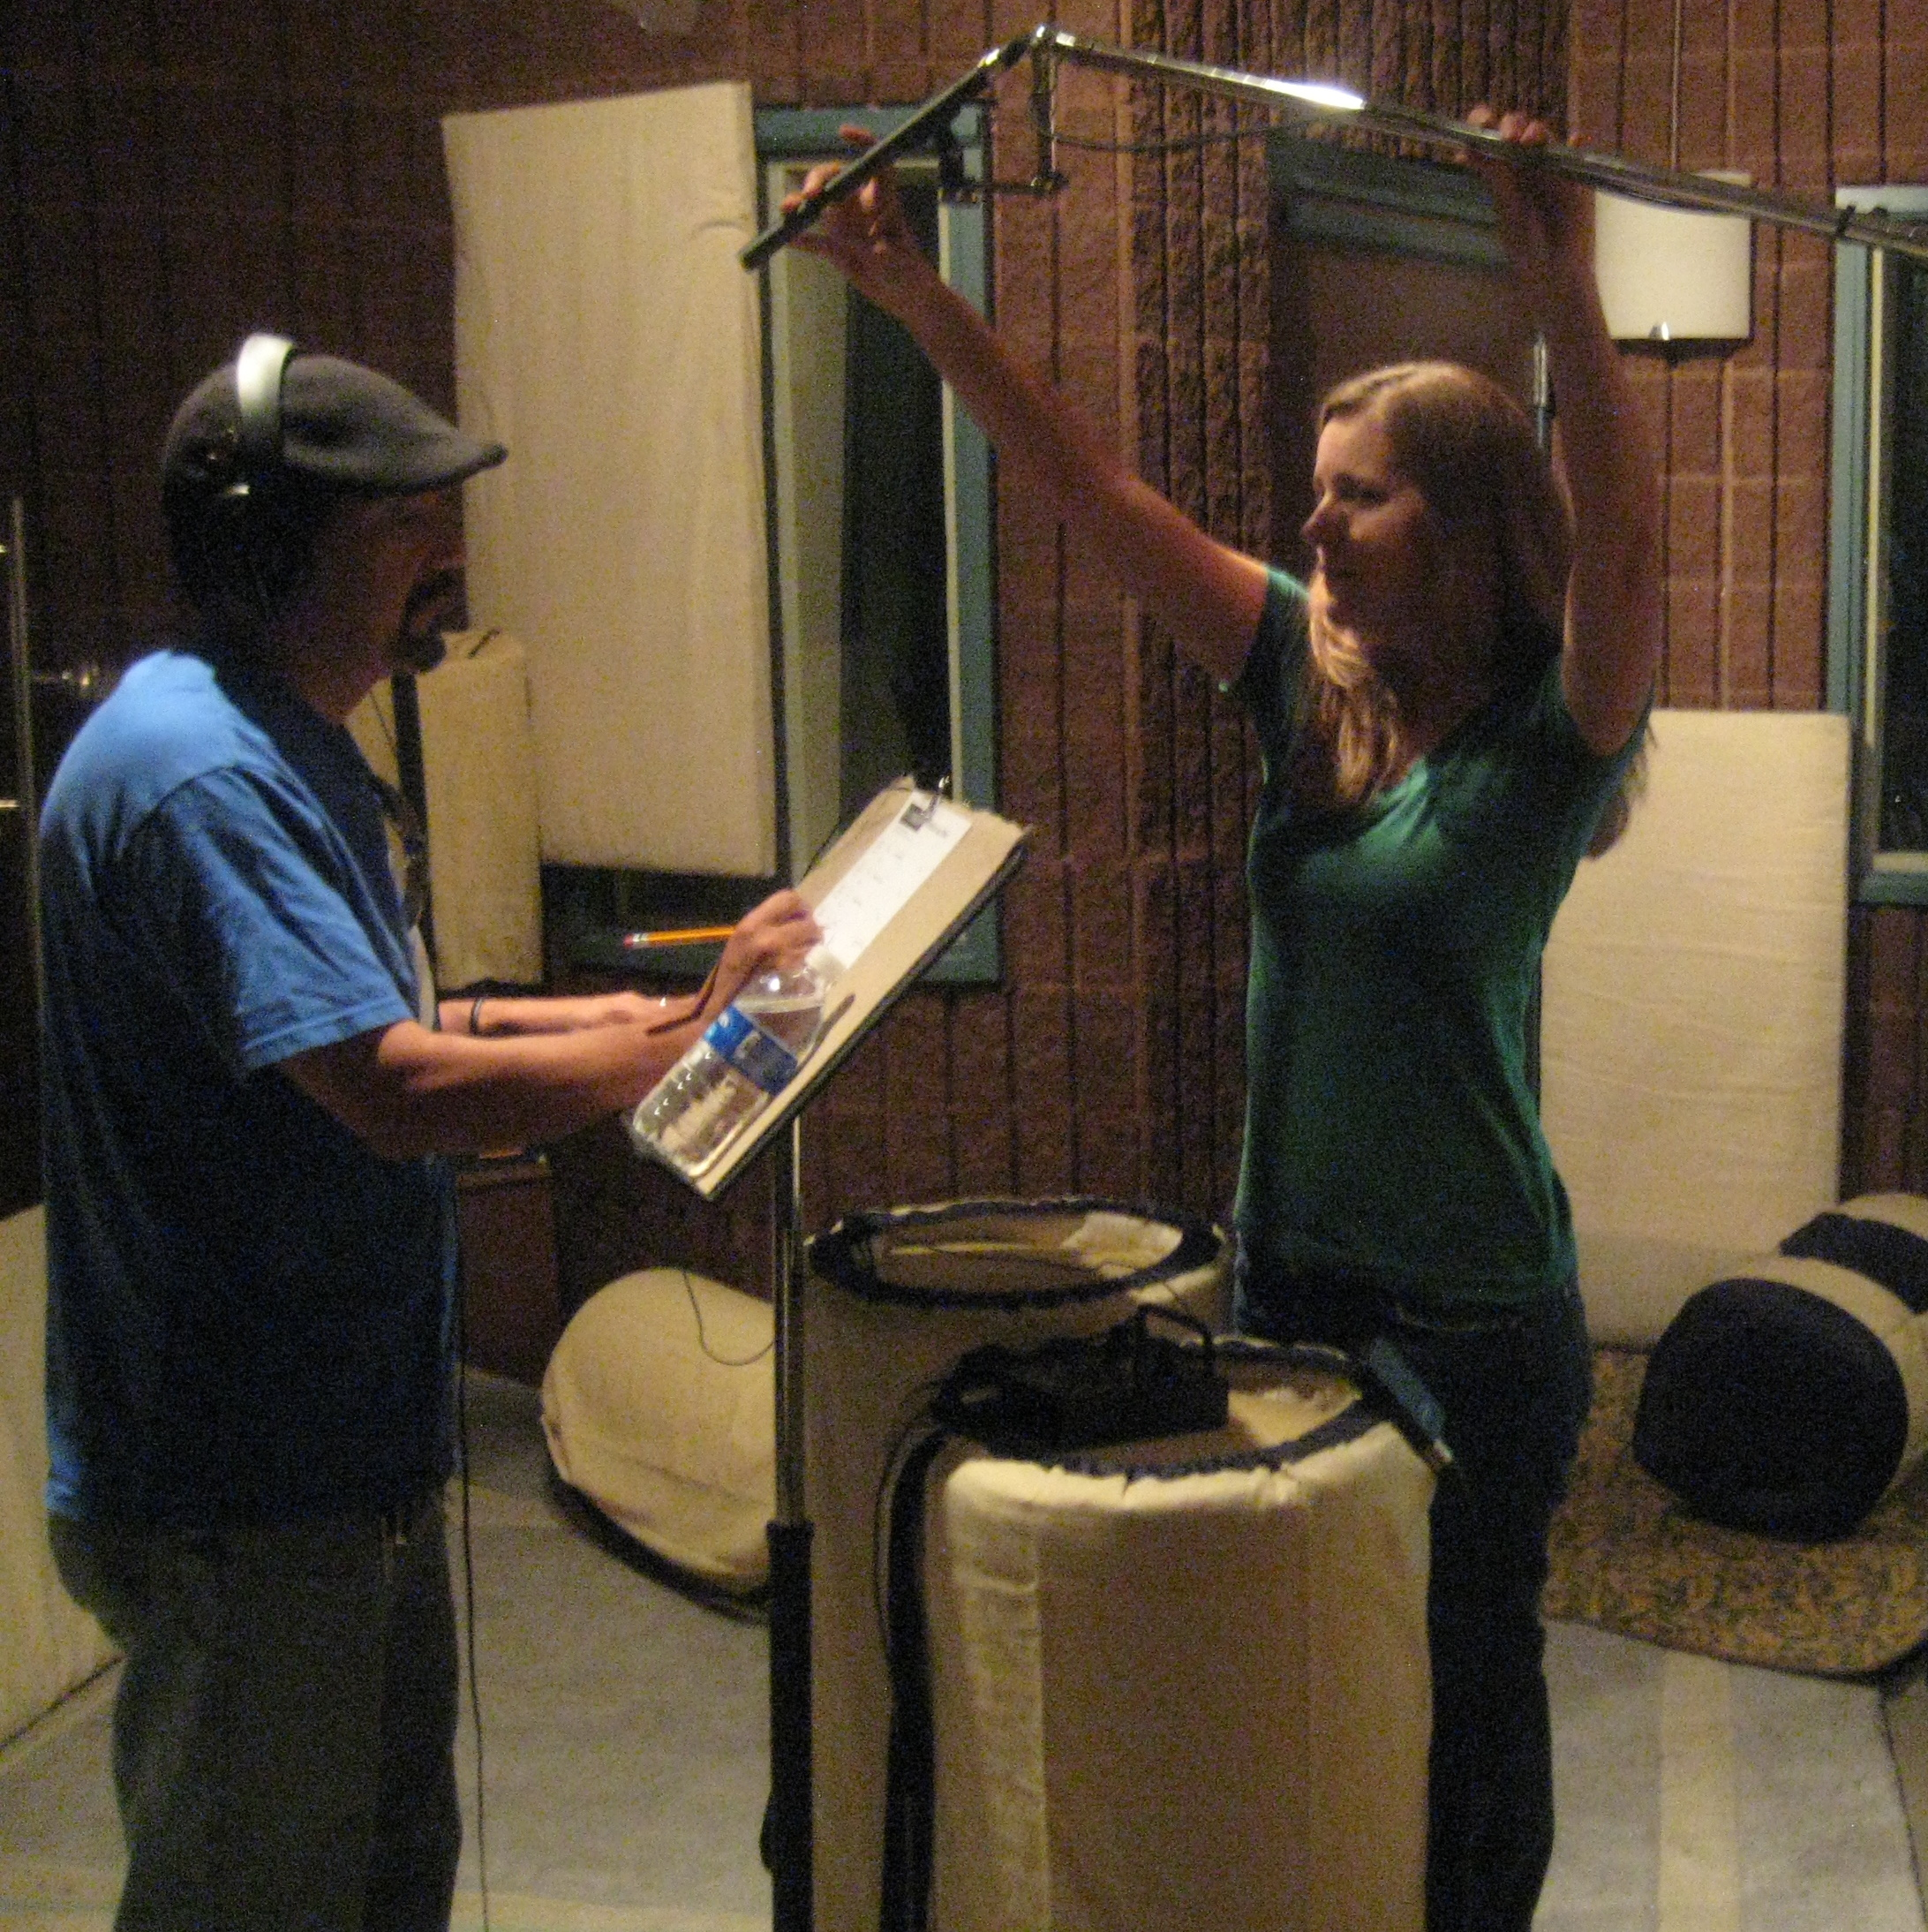 Kat miking Steven Michael Quezada for an ADR session